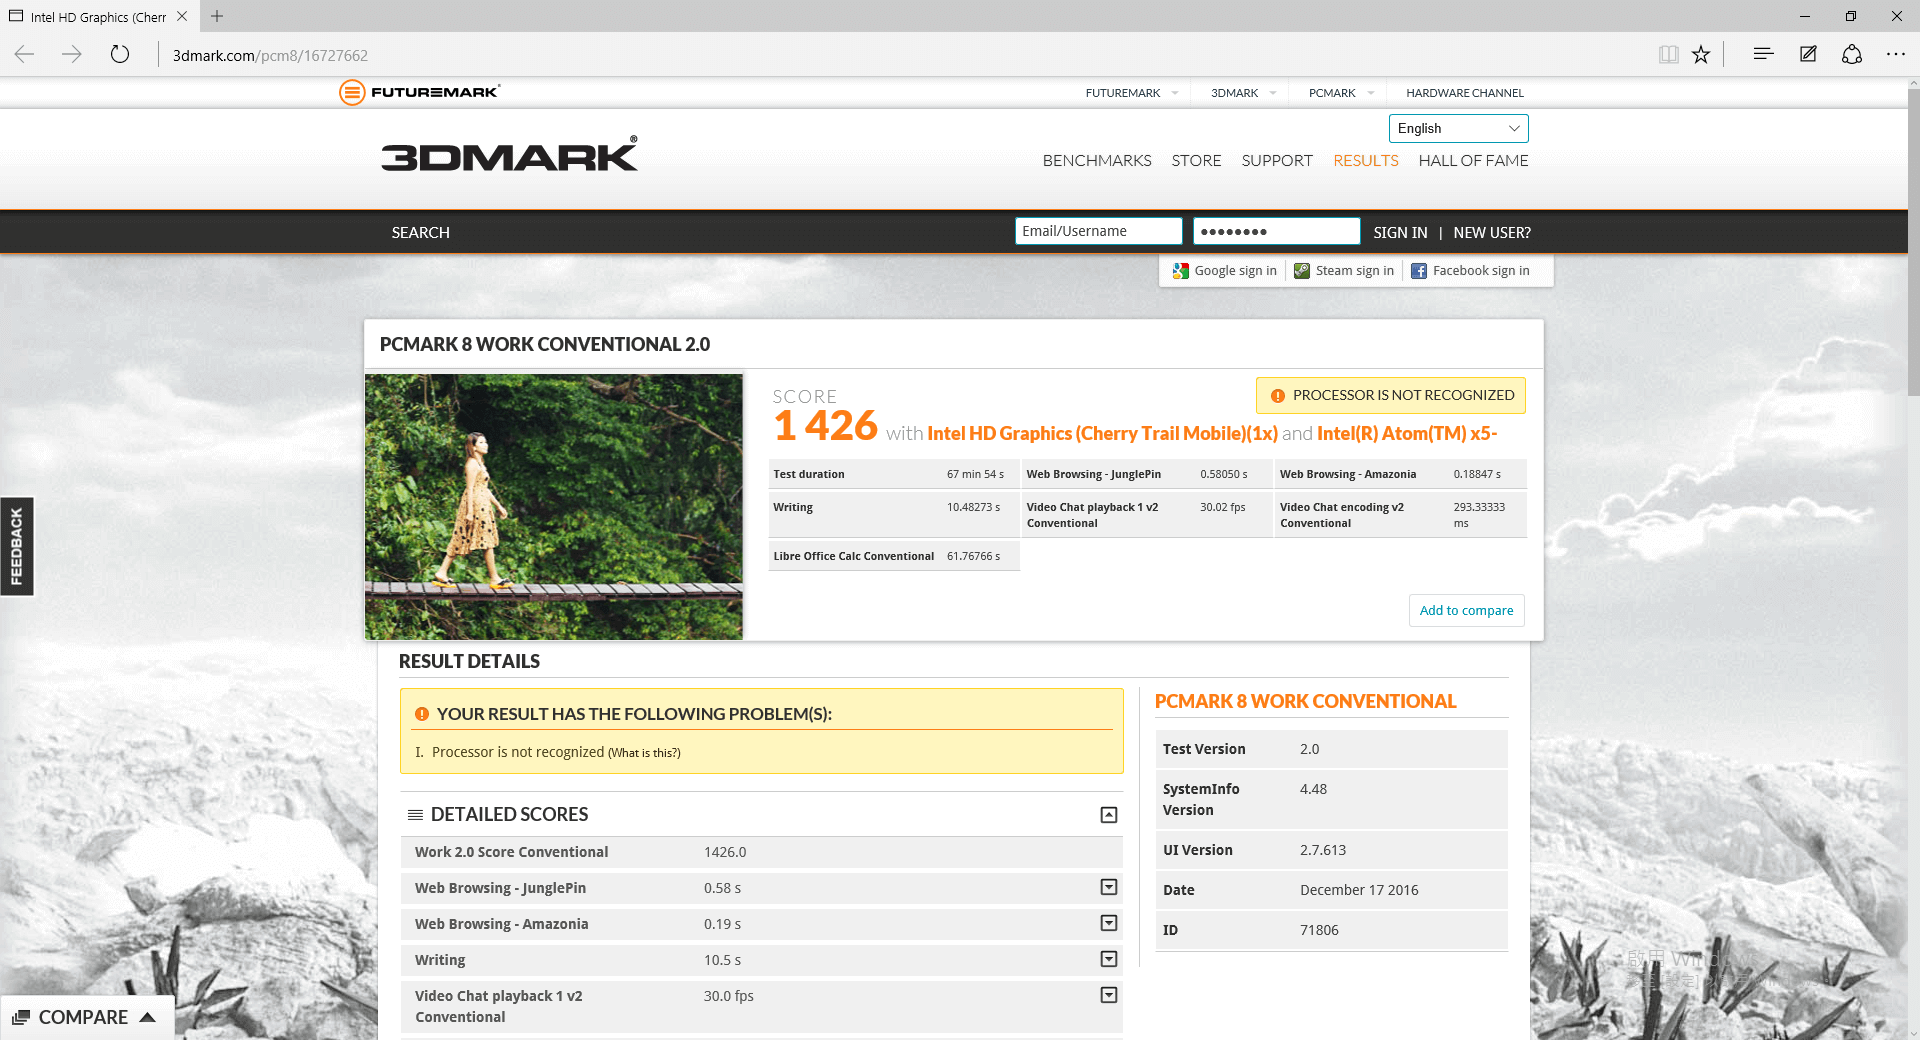 pcmark8-work-conventional